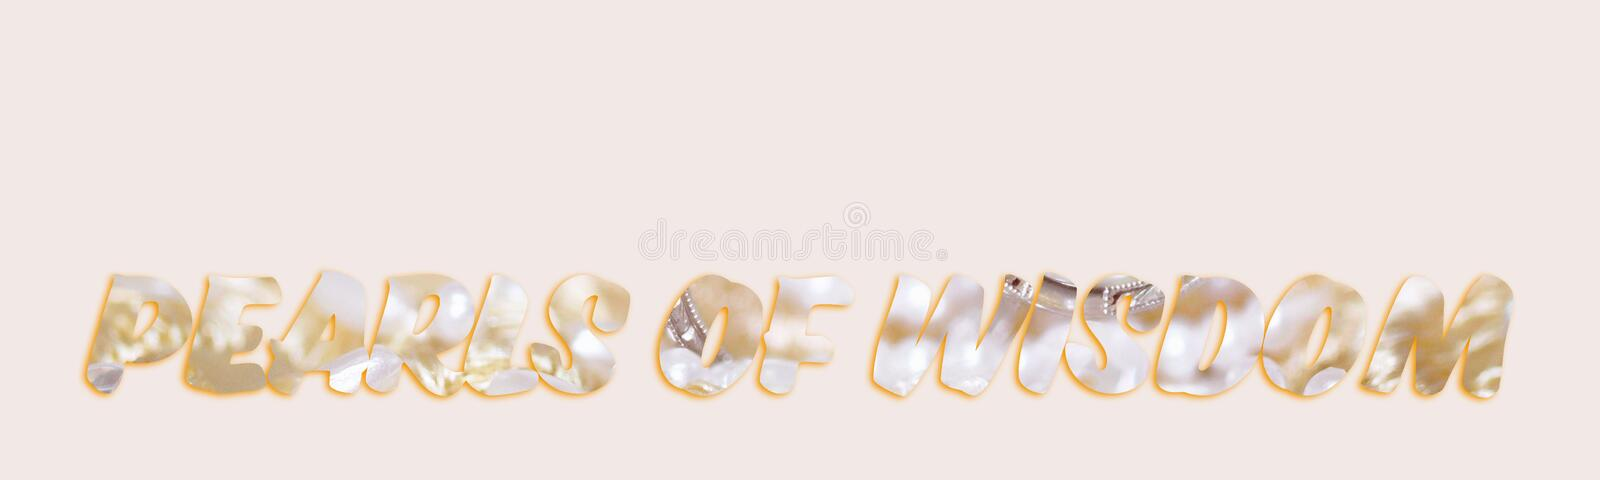 Pearls Of Wisdom Text From Jewellery Image. Pearls Of Wisdom - text with image of pearls forming the letters, suitable for web, print, professional or personal stock photos